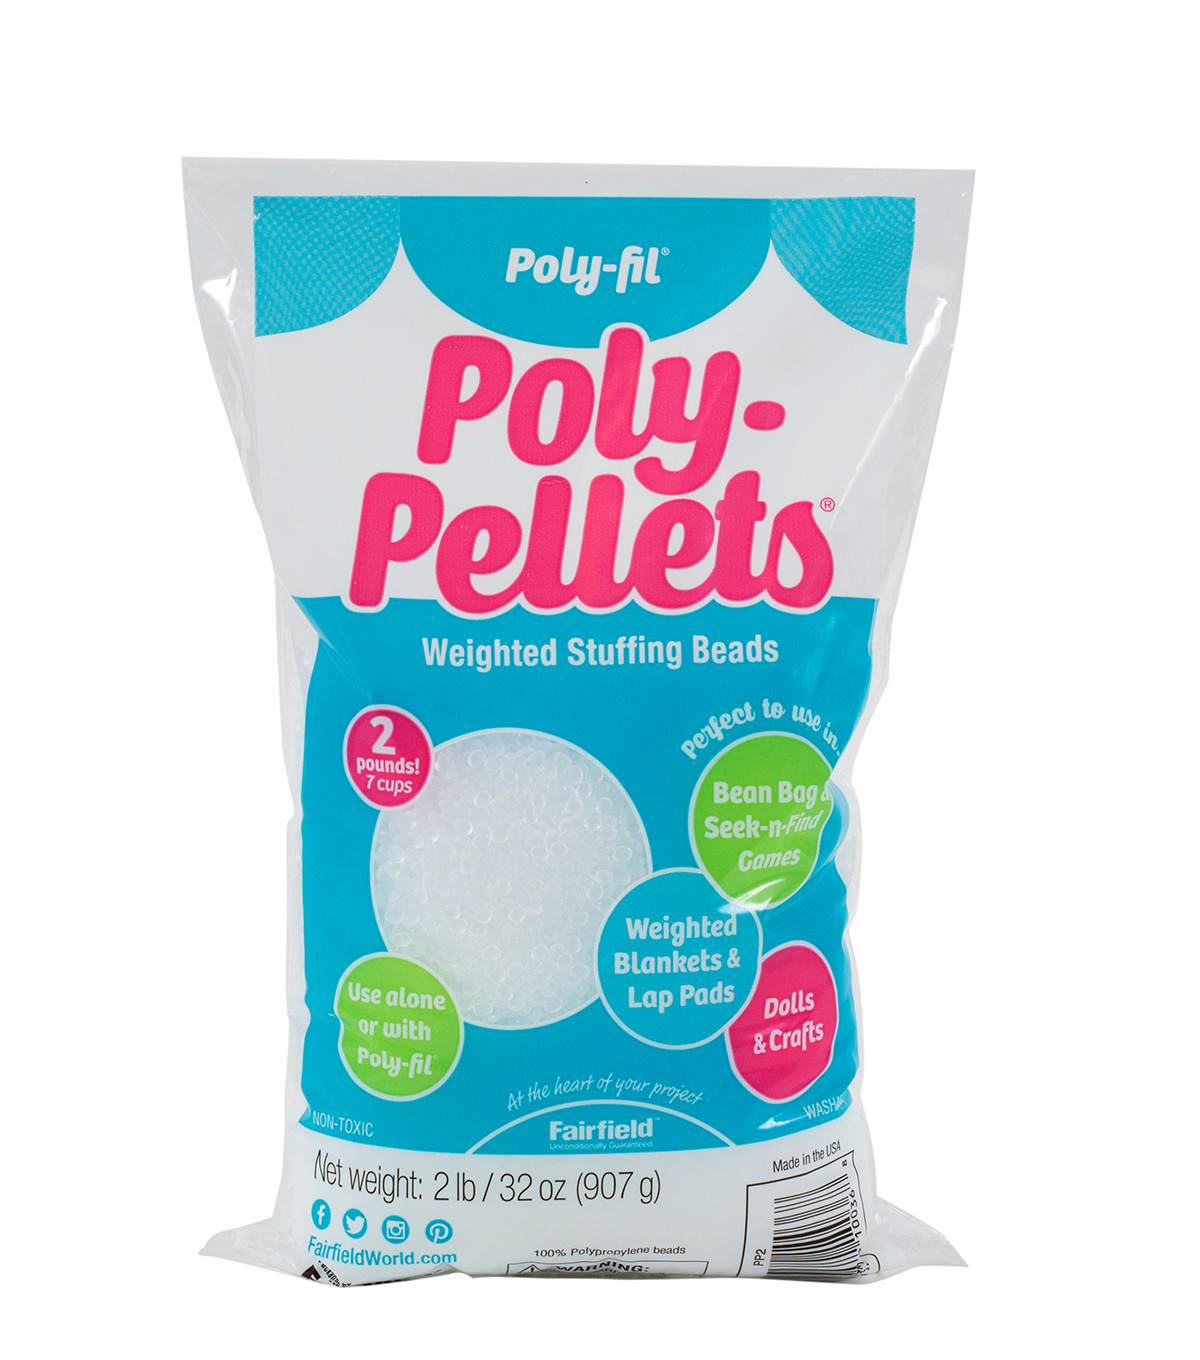 Poly Fil Poly Pellets Weighted Stuffing Beads 2 Lb Bag Joann